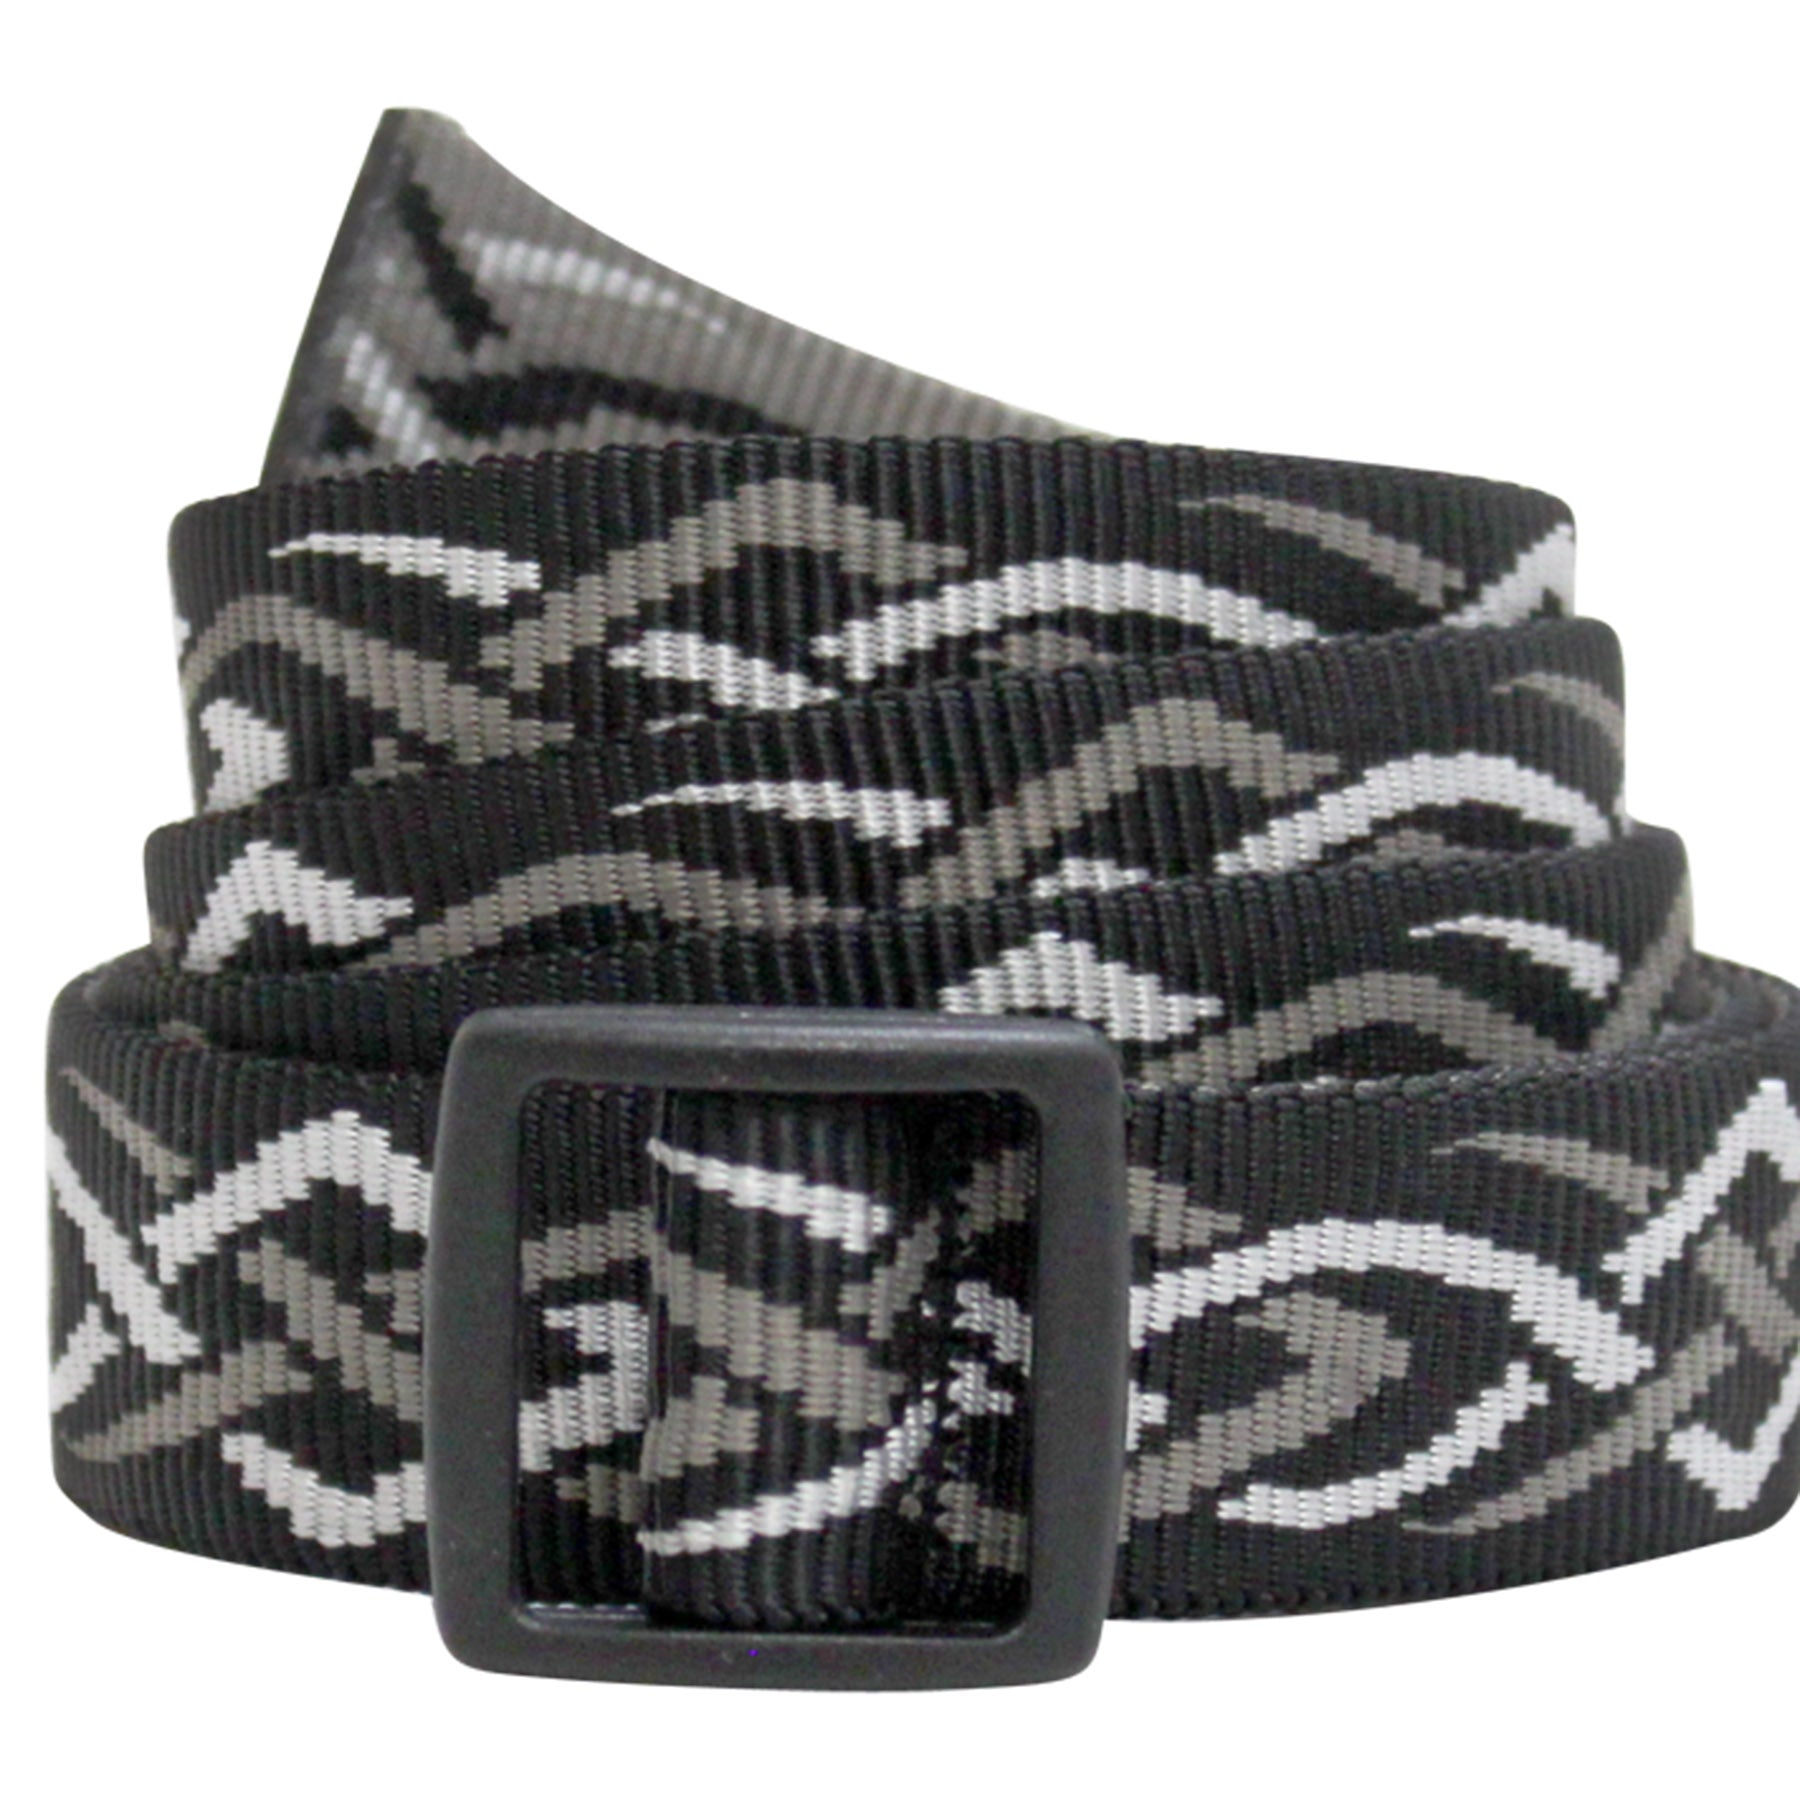 Bison Belts Slider Belt 25mm